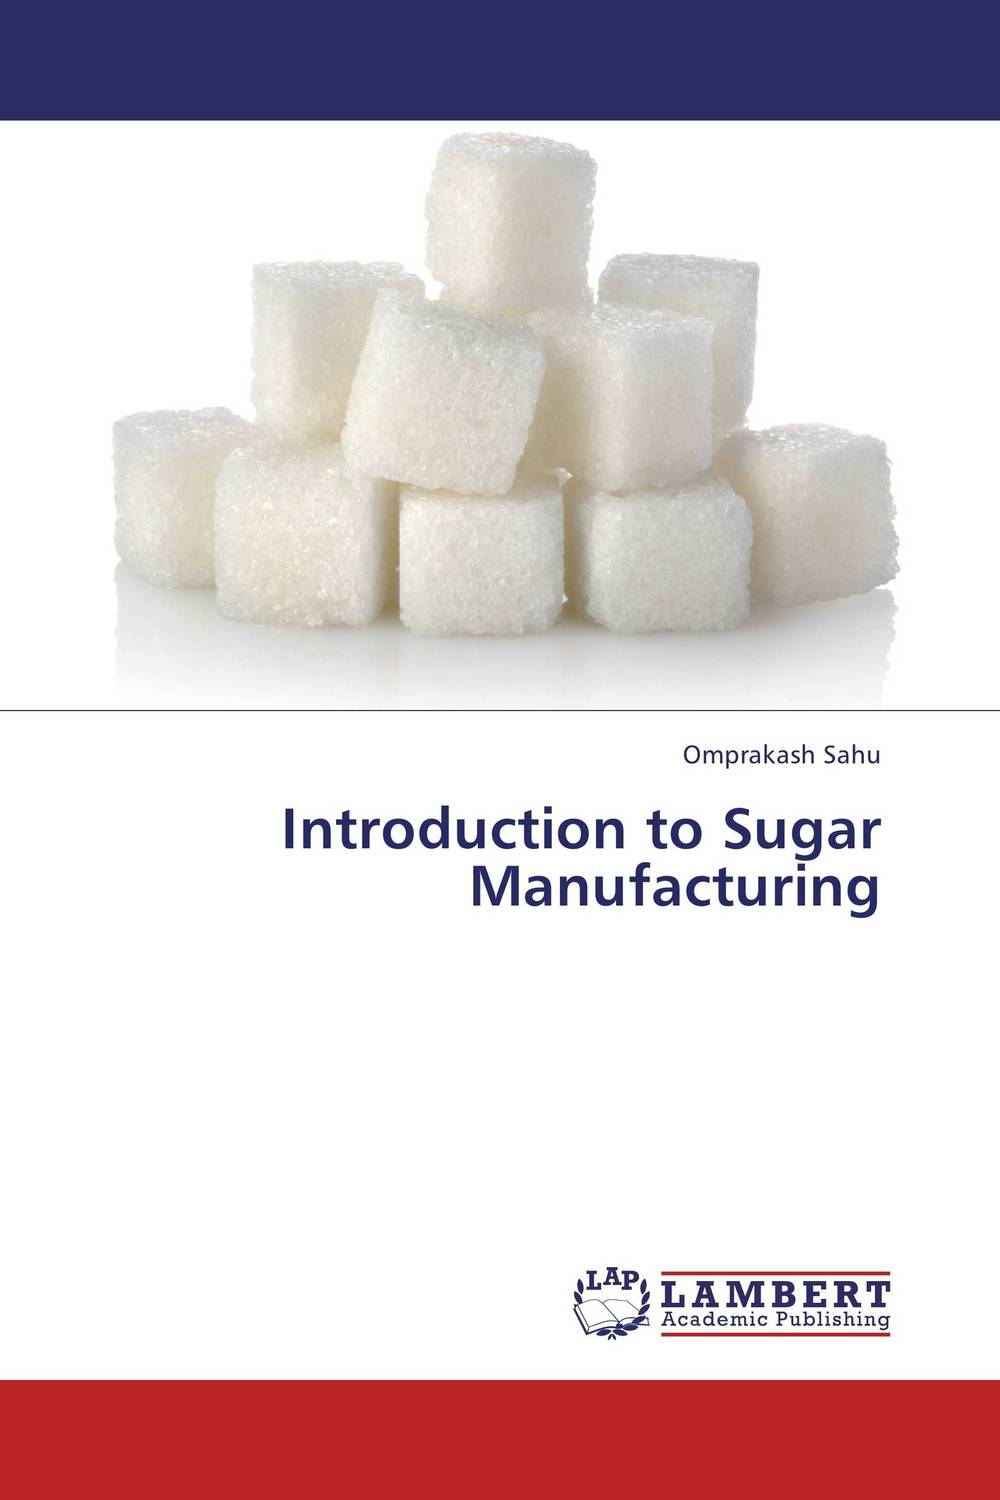 Introduction to Sugar Manufacturing i have sugar